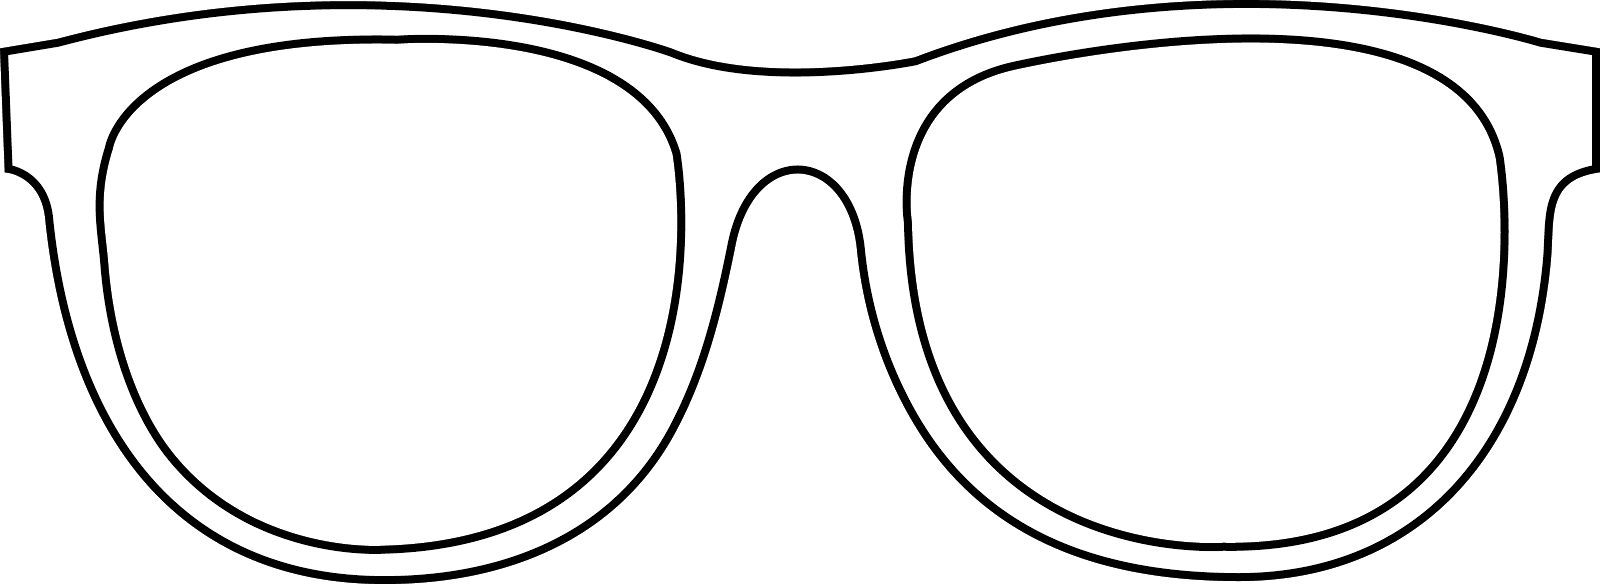 Sun with sunglasses clipart black and white graphic black and white download 28+ Collection of Sunglasses Drawing Template | High quality, free ... graphic black and white download